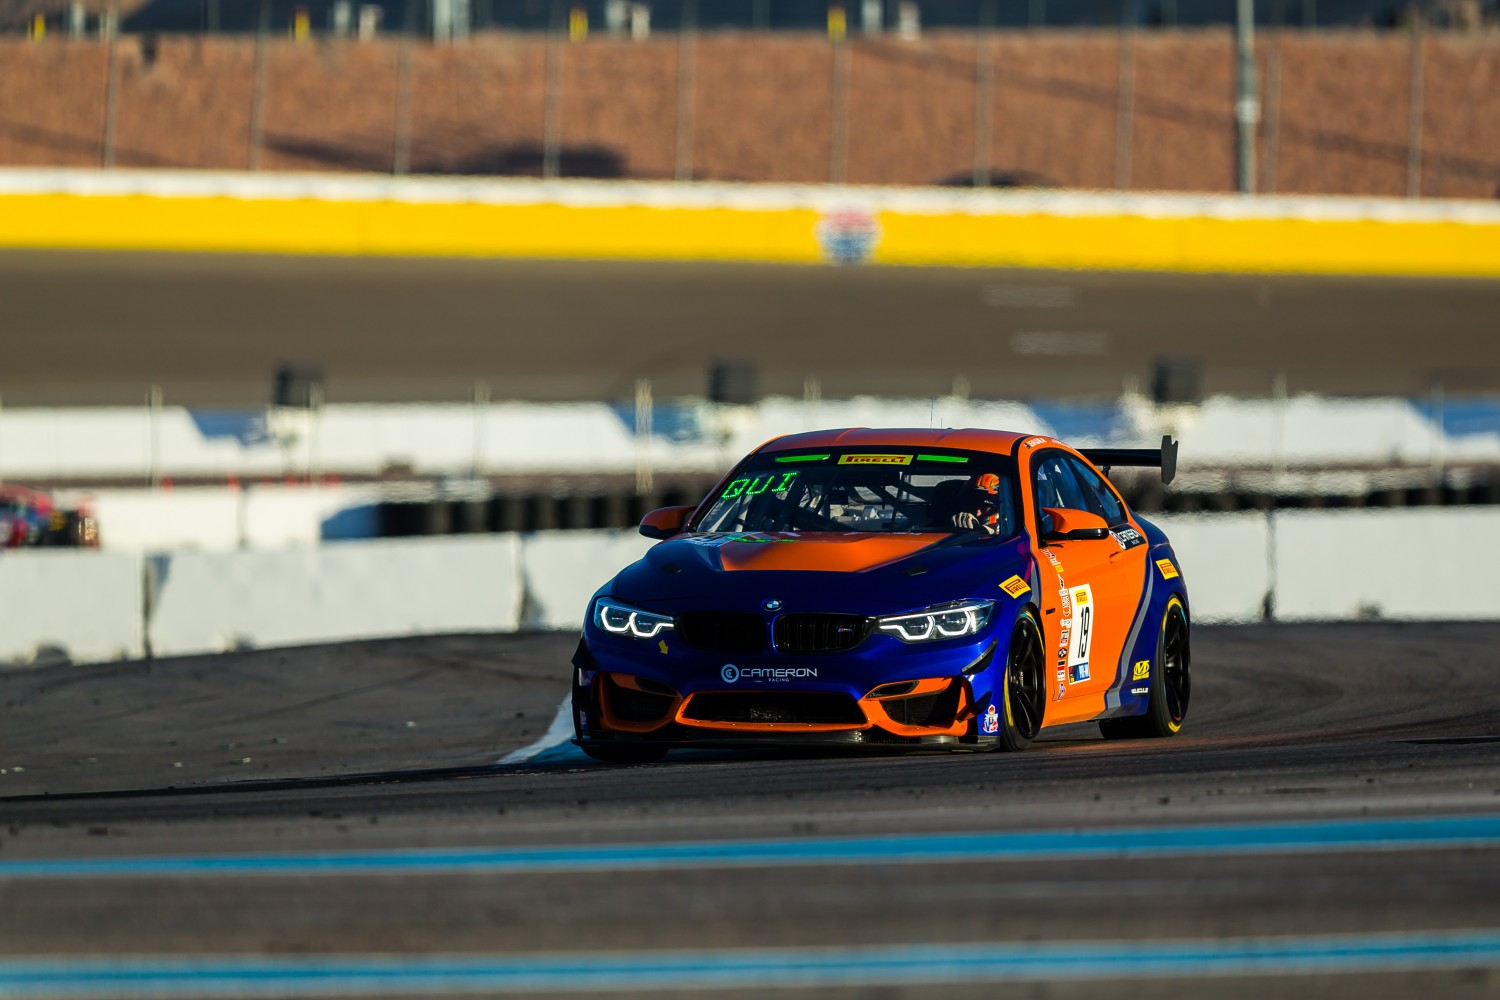 #19 BMW M4 GT4 of Sean Quinlan and Gregory Liefooghe with Stephen Cameron Racing  2019 Blancpain GT World Challenge America - Las Vegas, Las Vegas NV | Fabian Lagunas/SRO